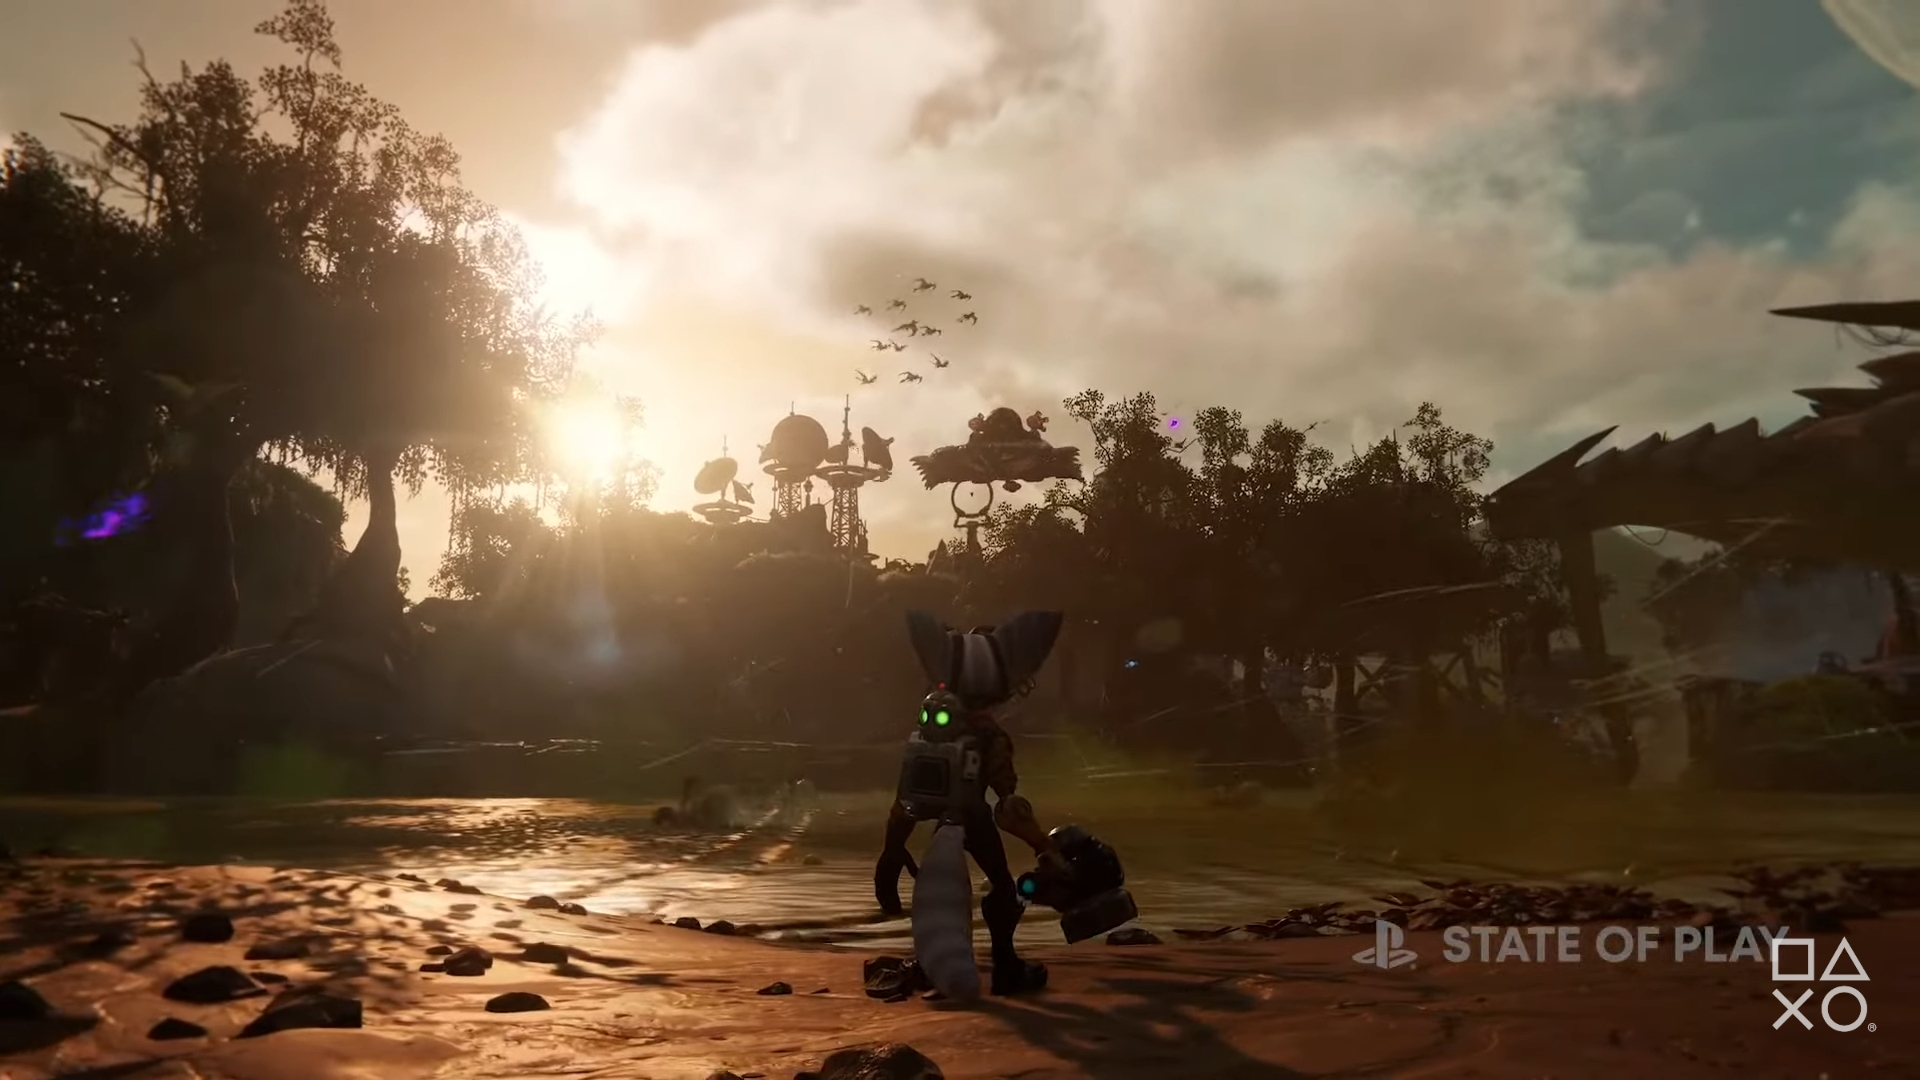 Sony State Of Play Recap: Ratchet And Clank, Among Us, And More